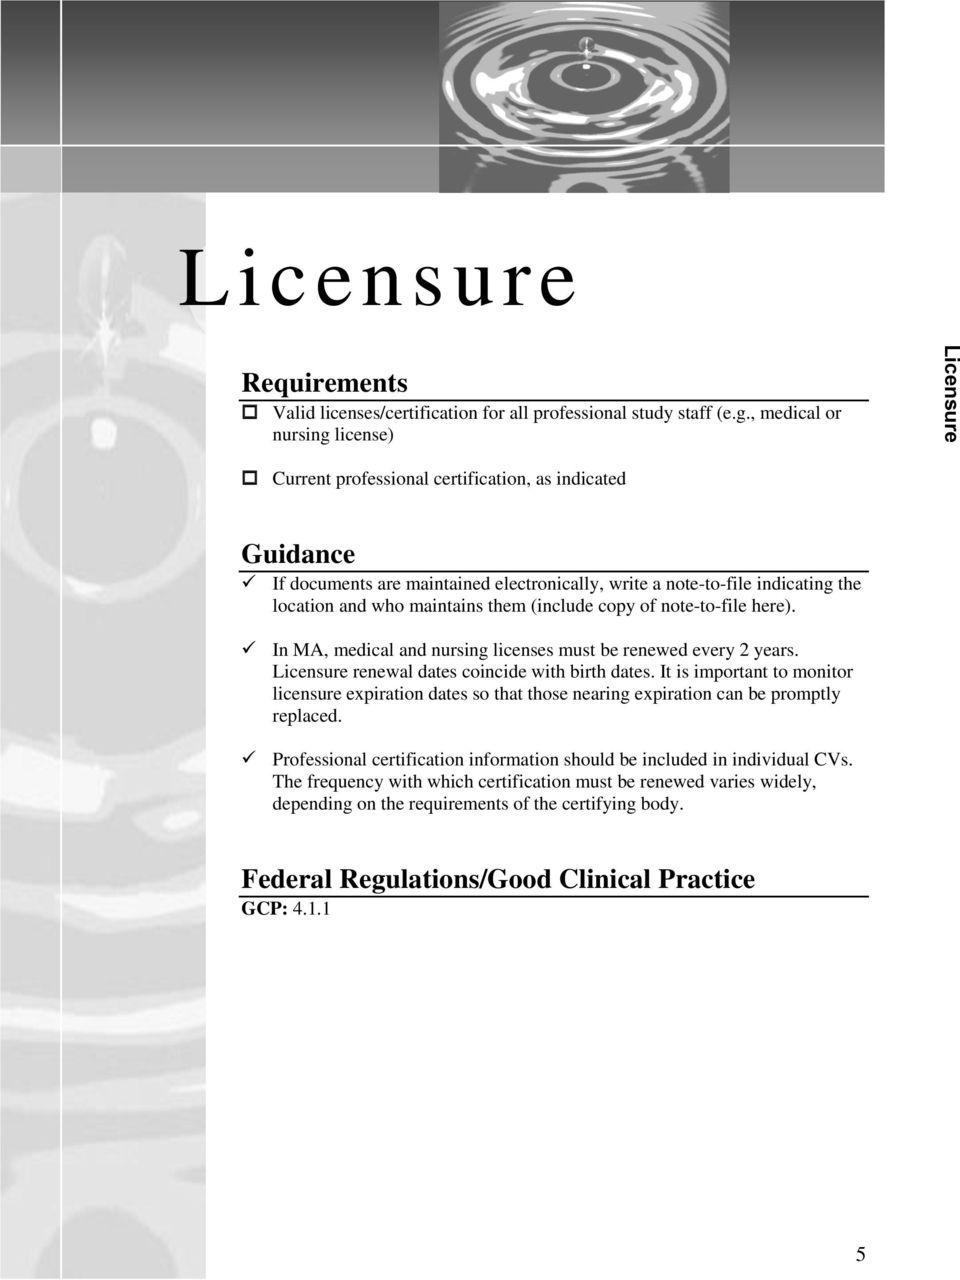 copy of note-to-file here). In MA, medical and nursing licenses must be renewed every 2 years. Licensure renewal dates coincide with birth dates.